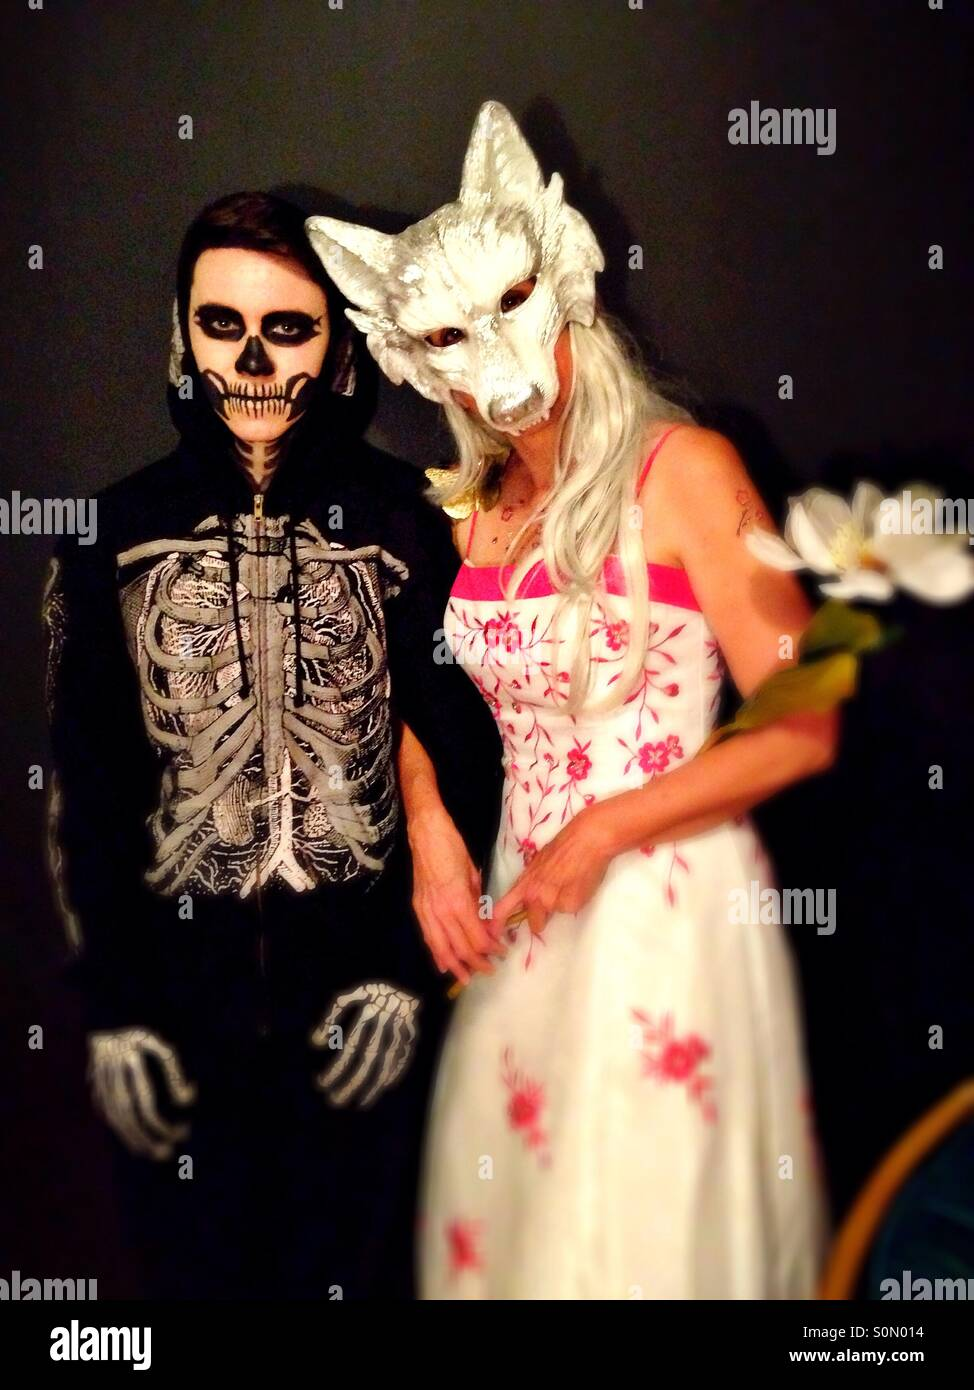 A couple dressed for halloween. - Stock Image